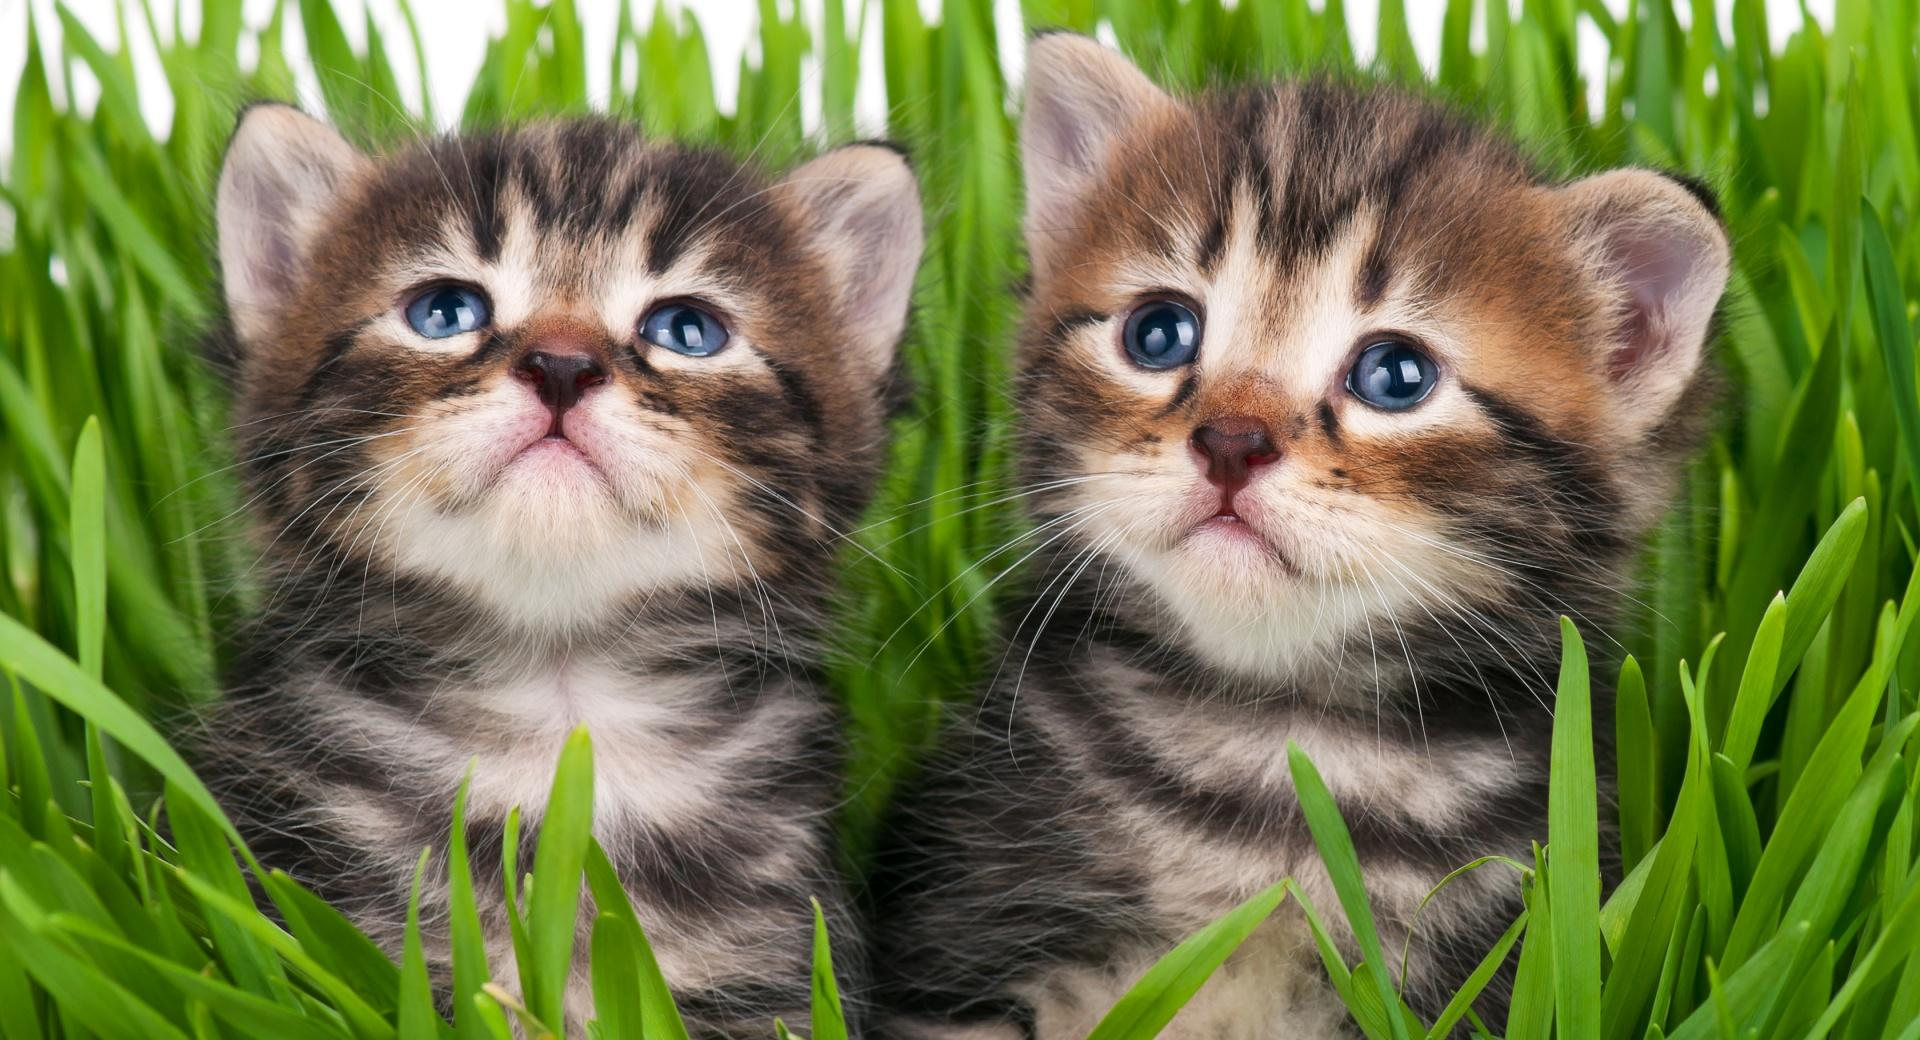 Baby Kittens wallpapers HD quality